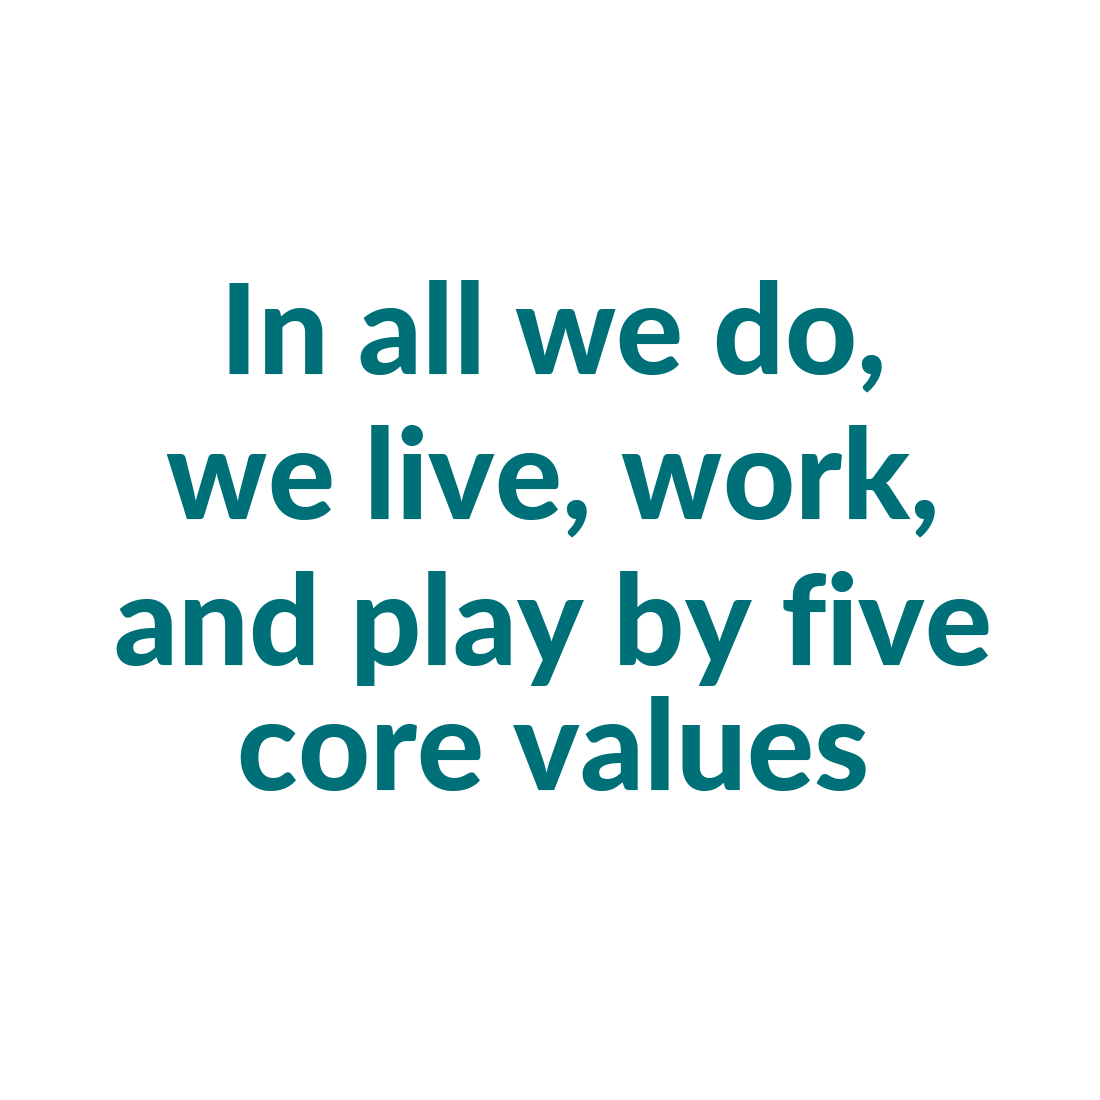 Core Values Headline